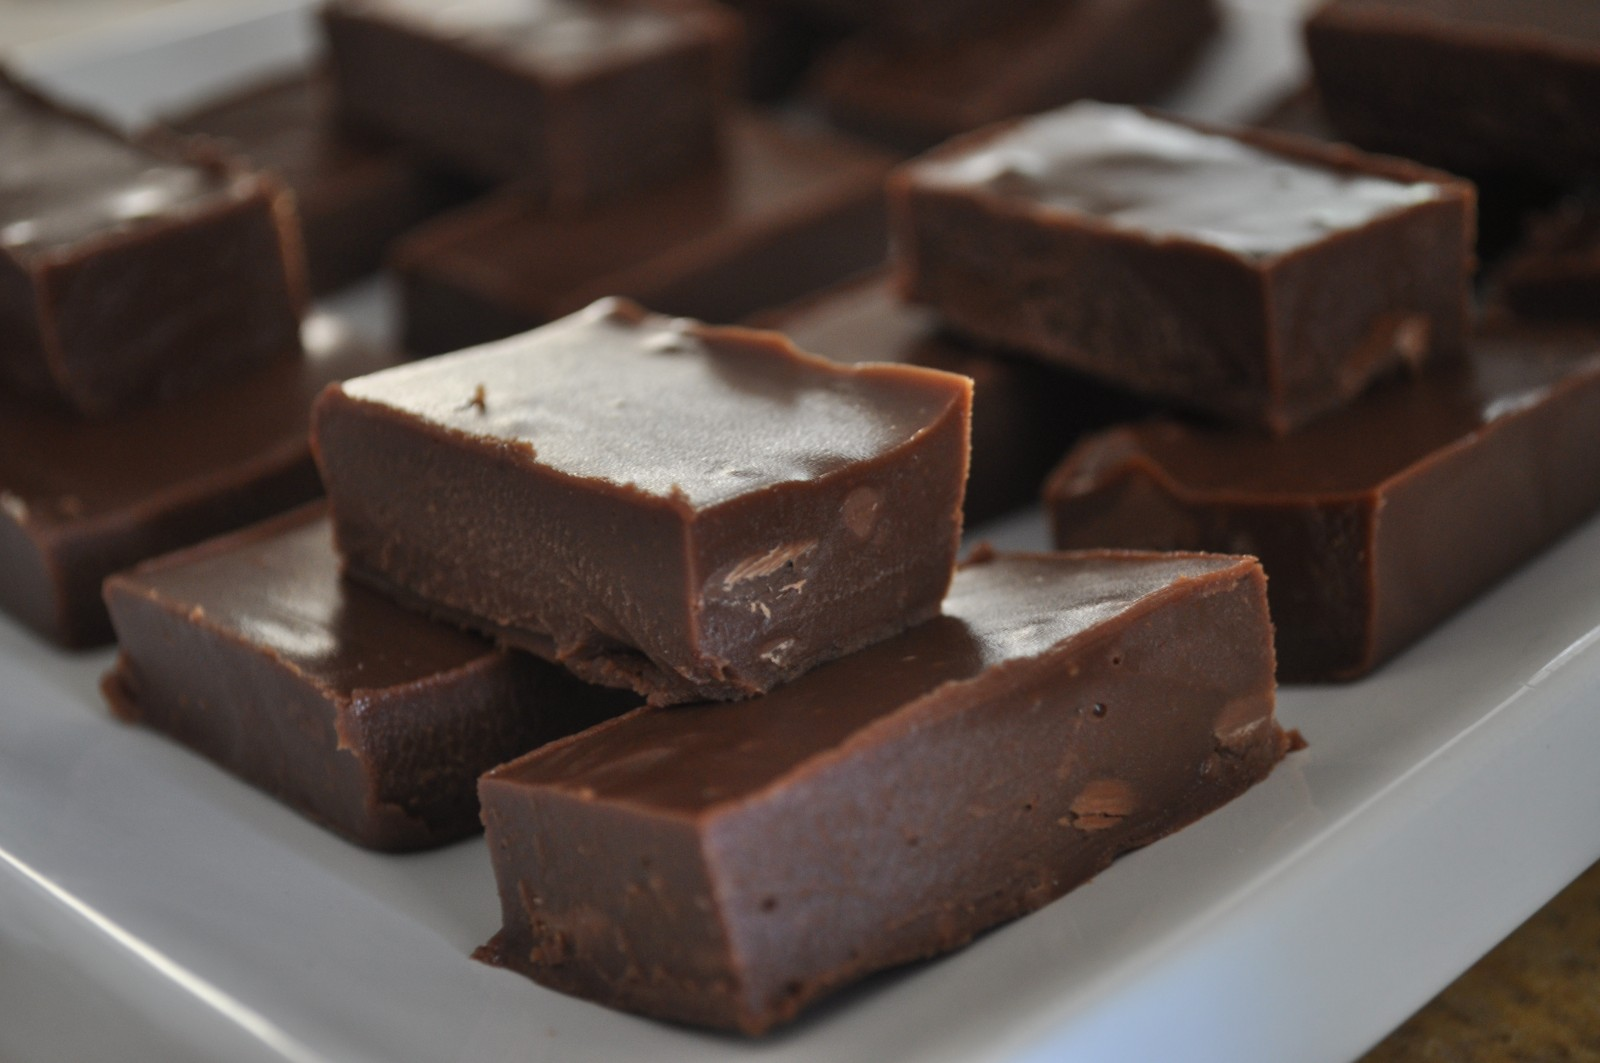 Choc-cinnamon fudge